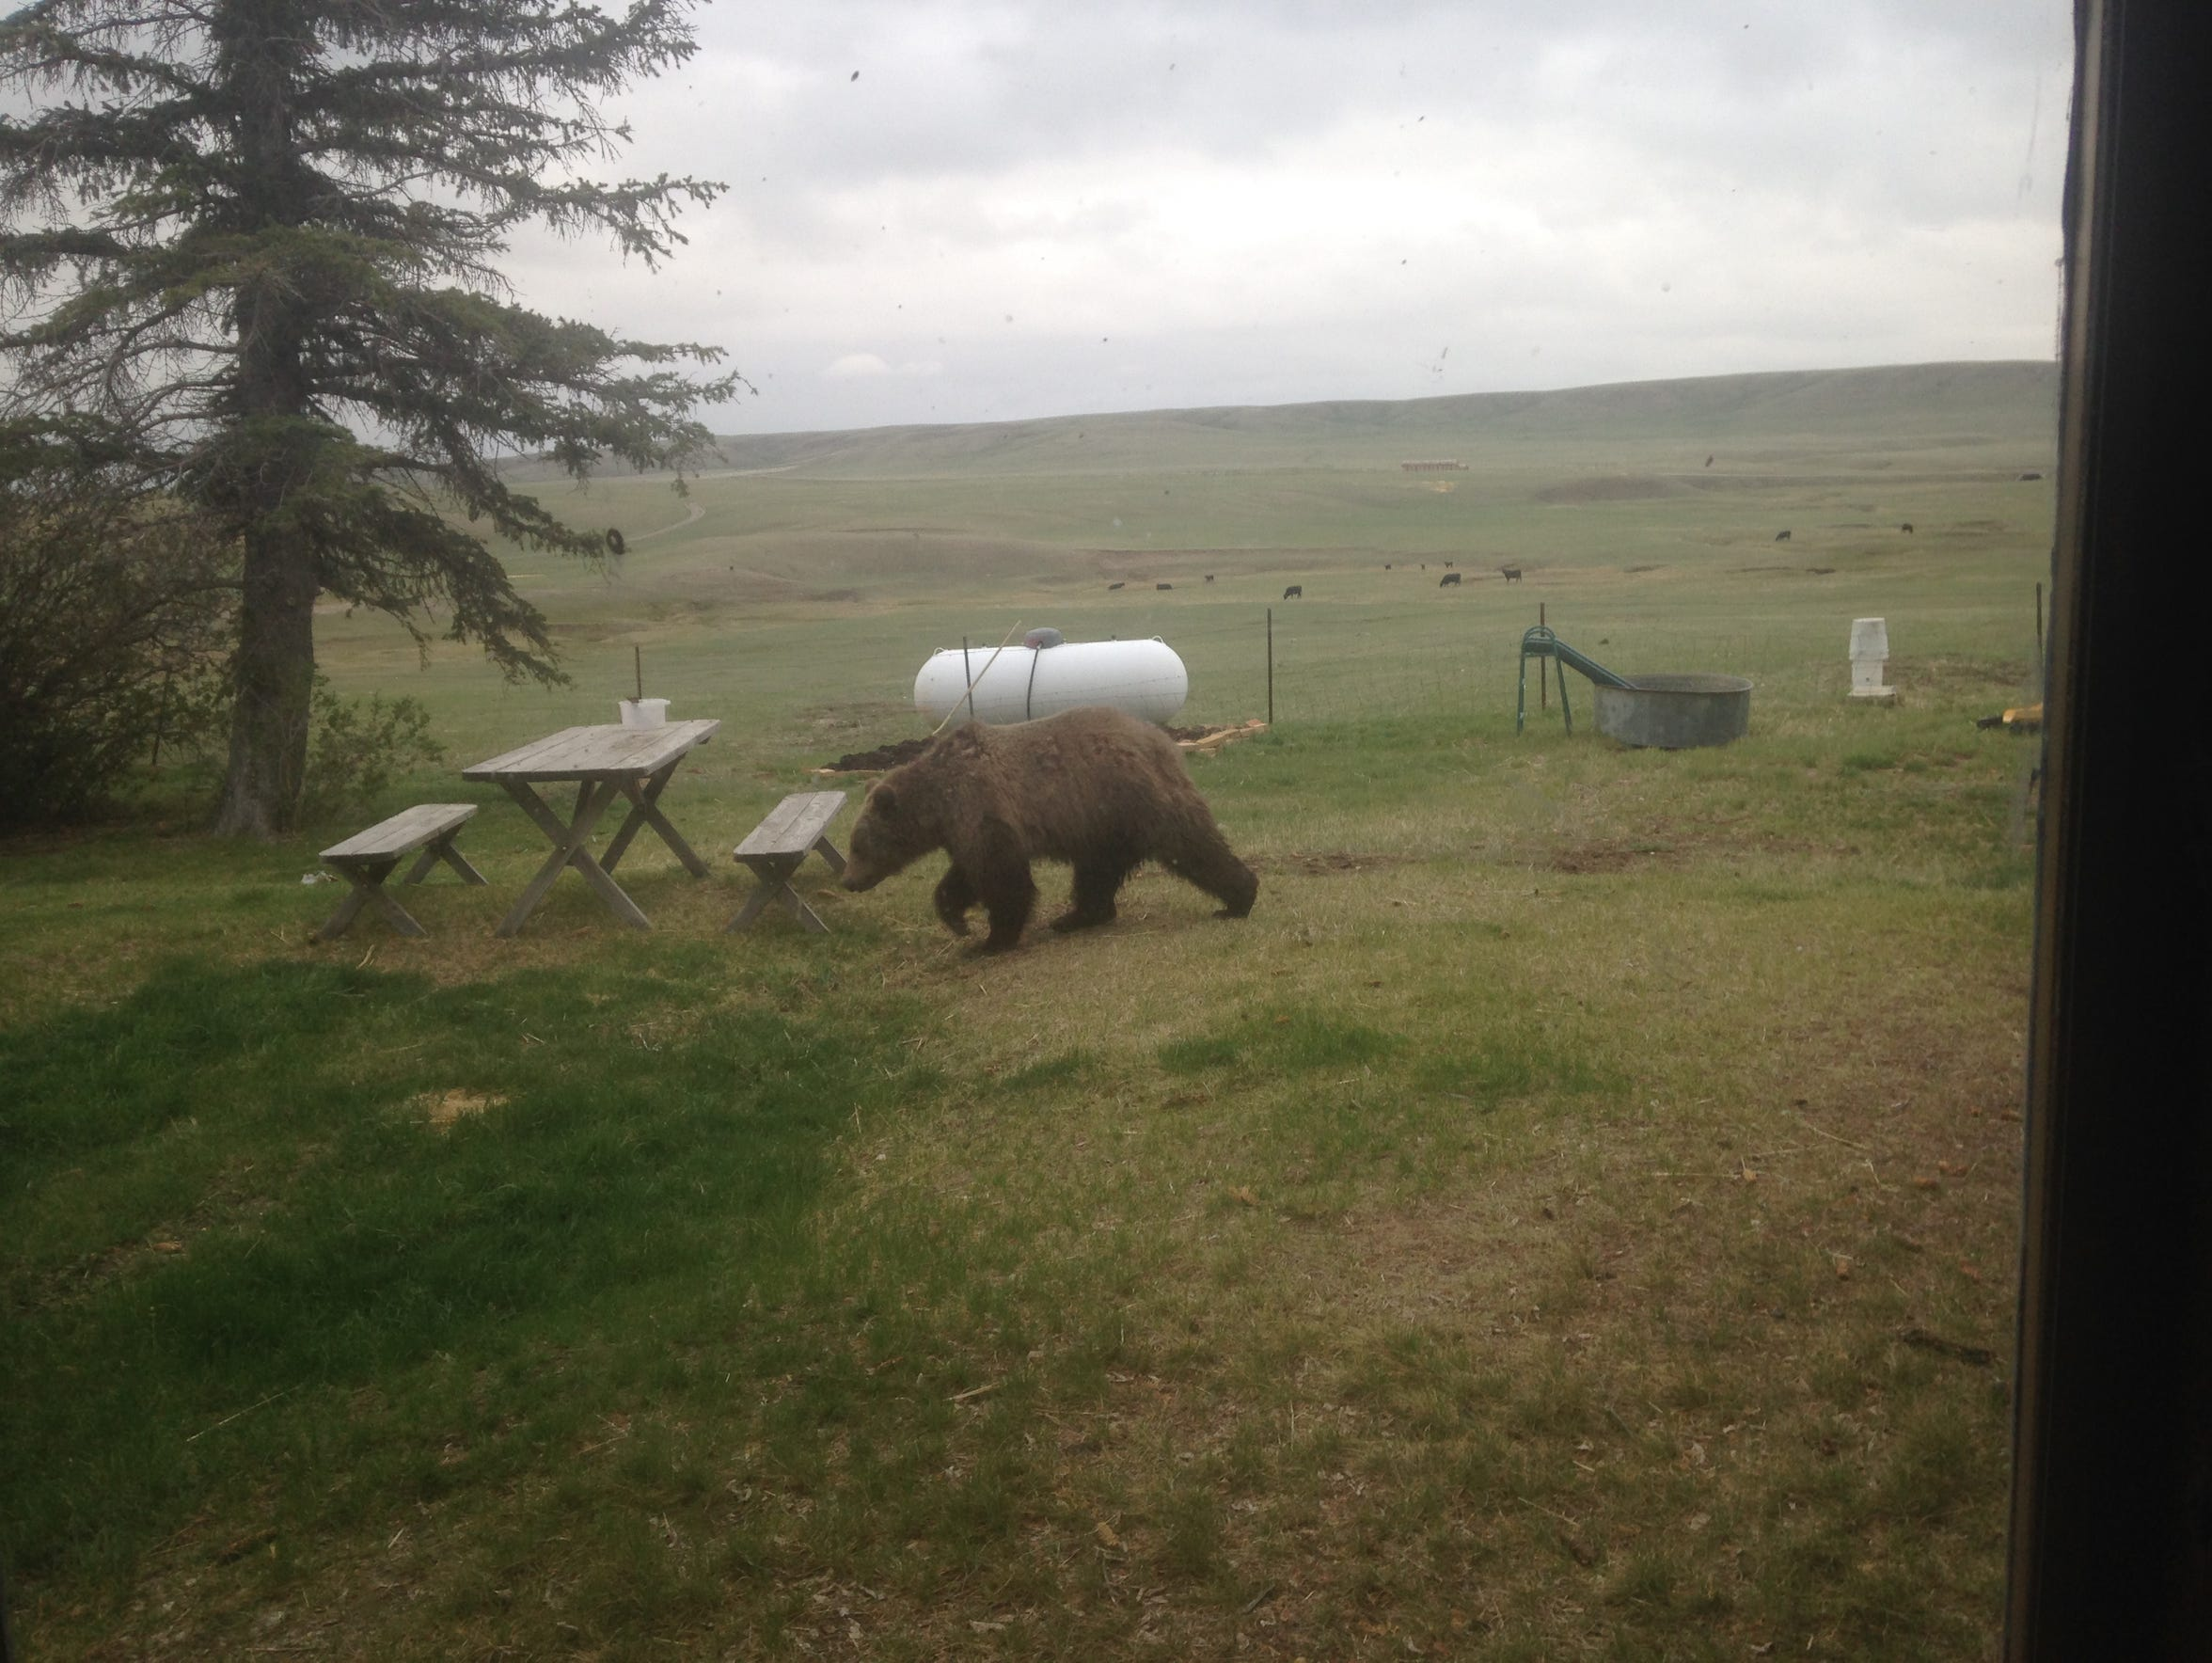 This young grizzly showed up at the Graham Ranch near